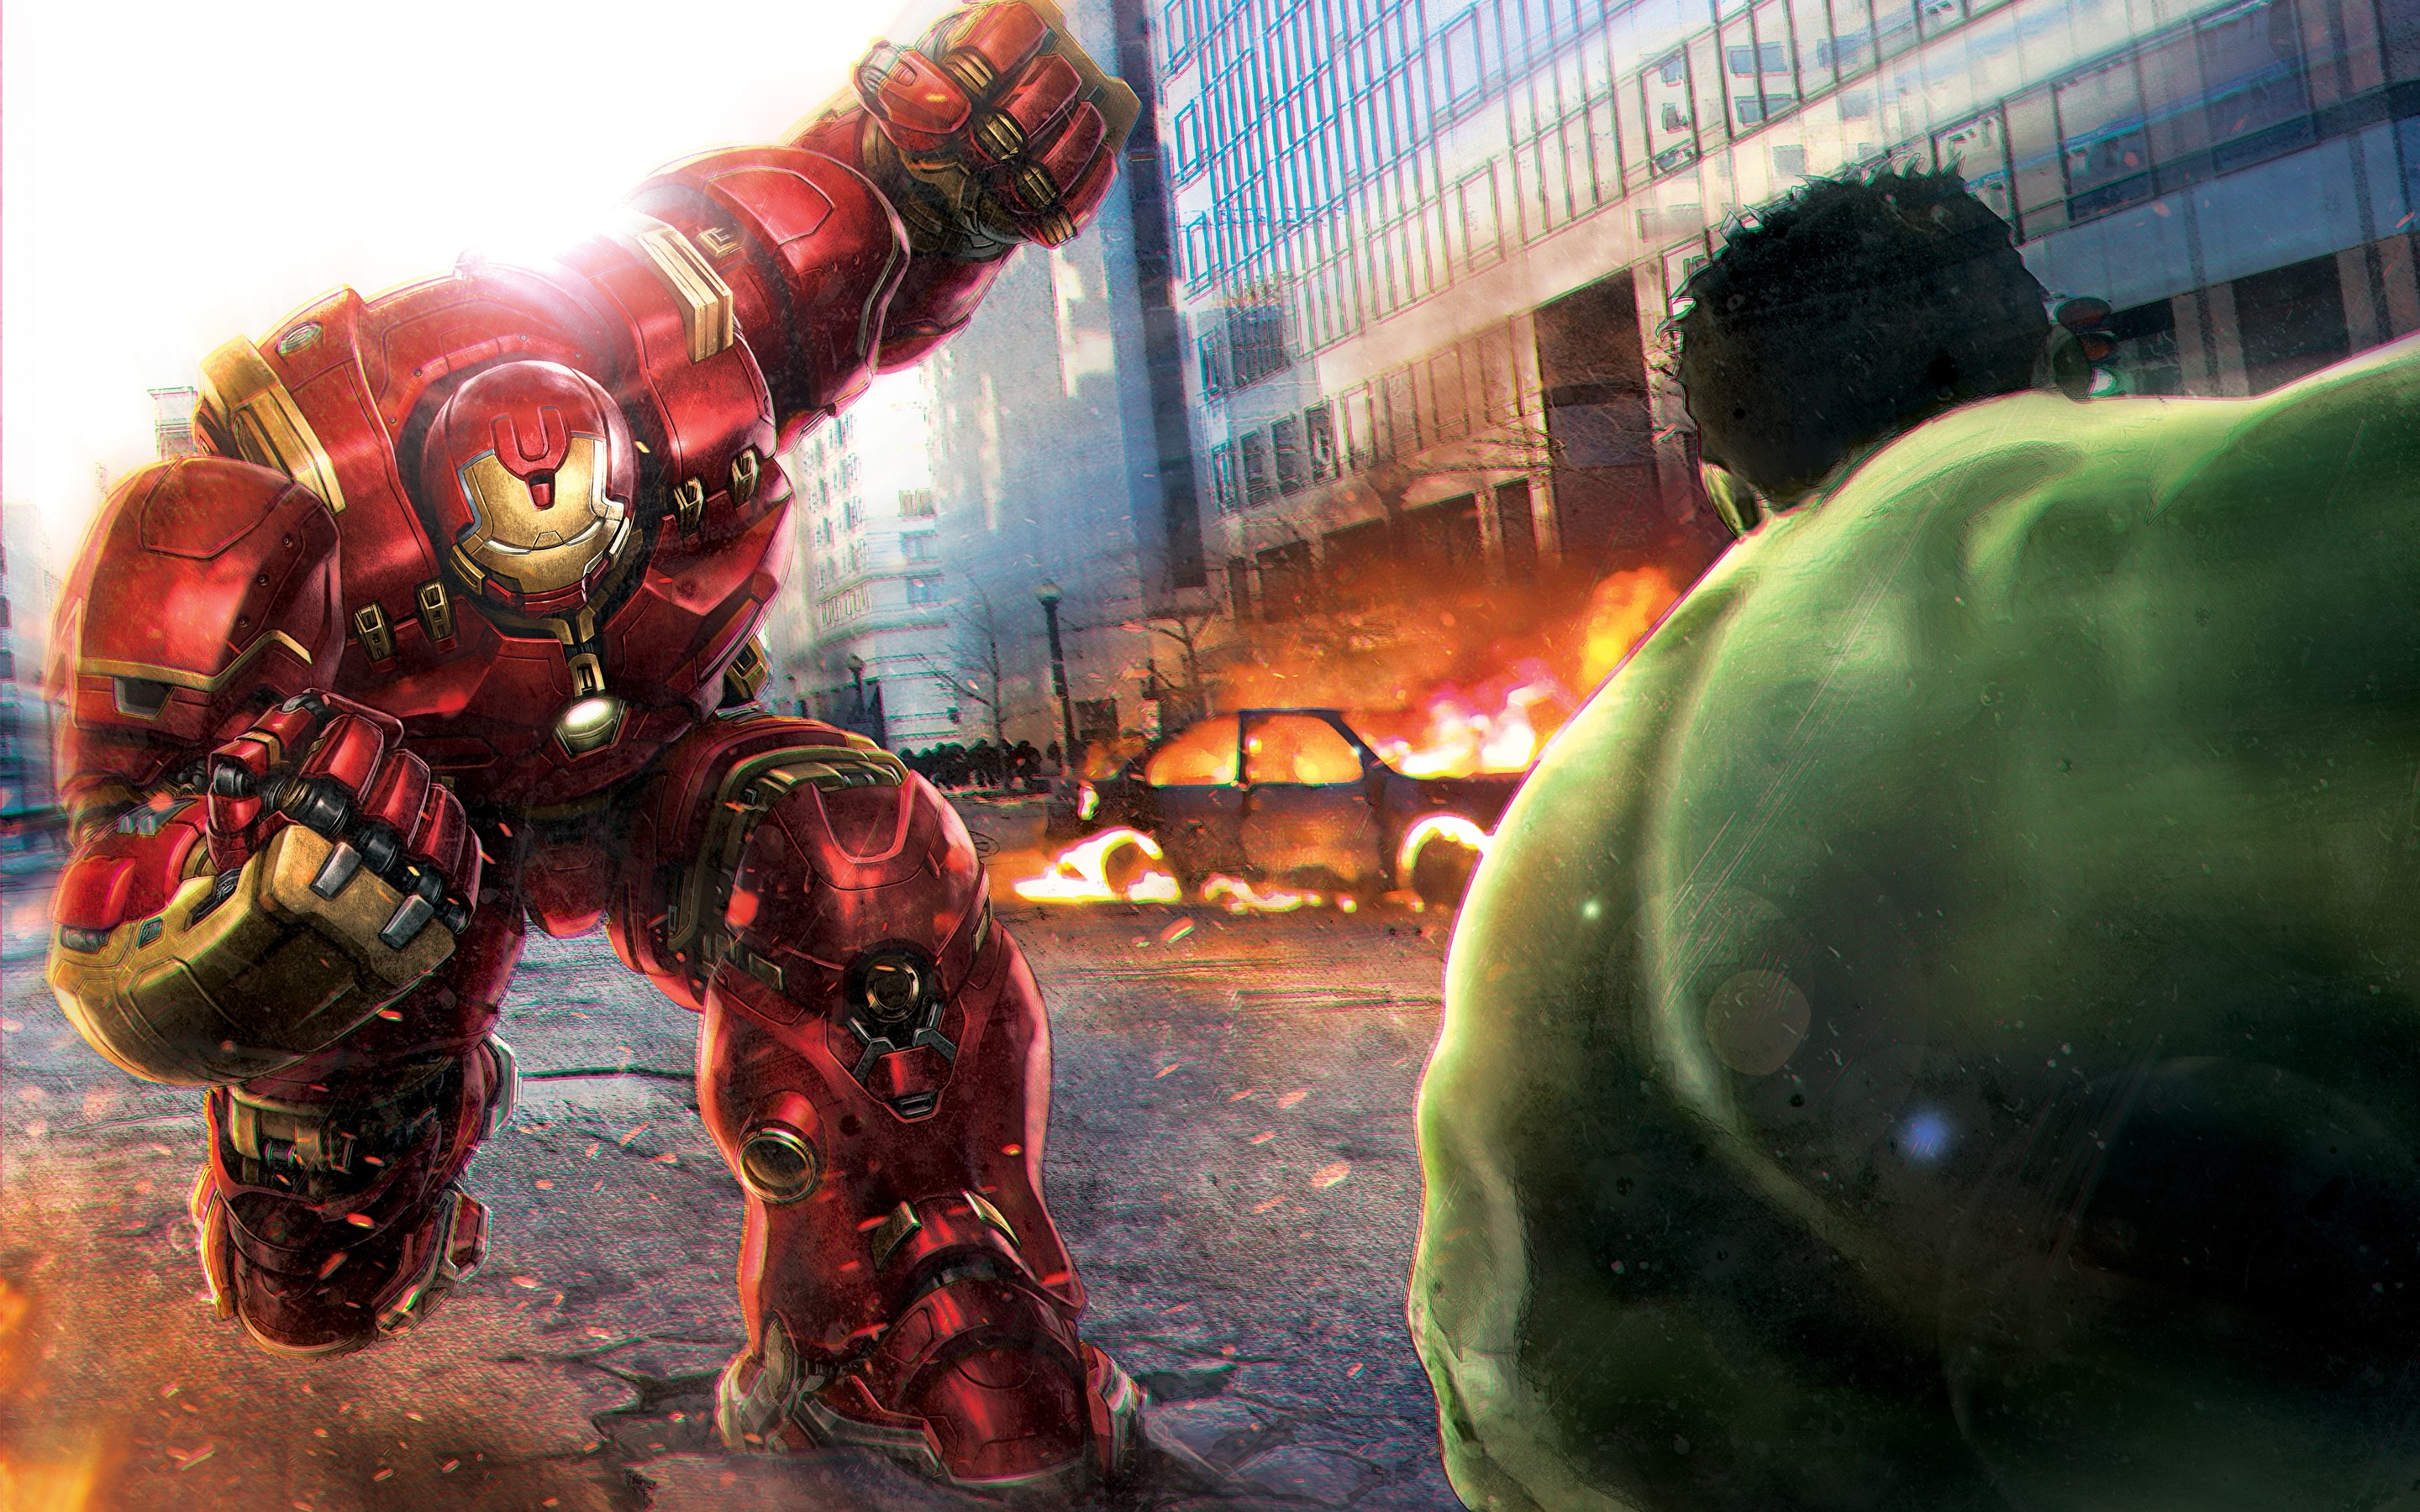 Hulk Vs Hulkbuster Hd Movies 4k Wallpapers Images